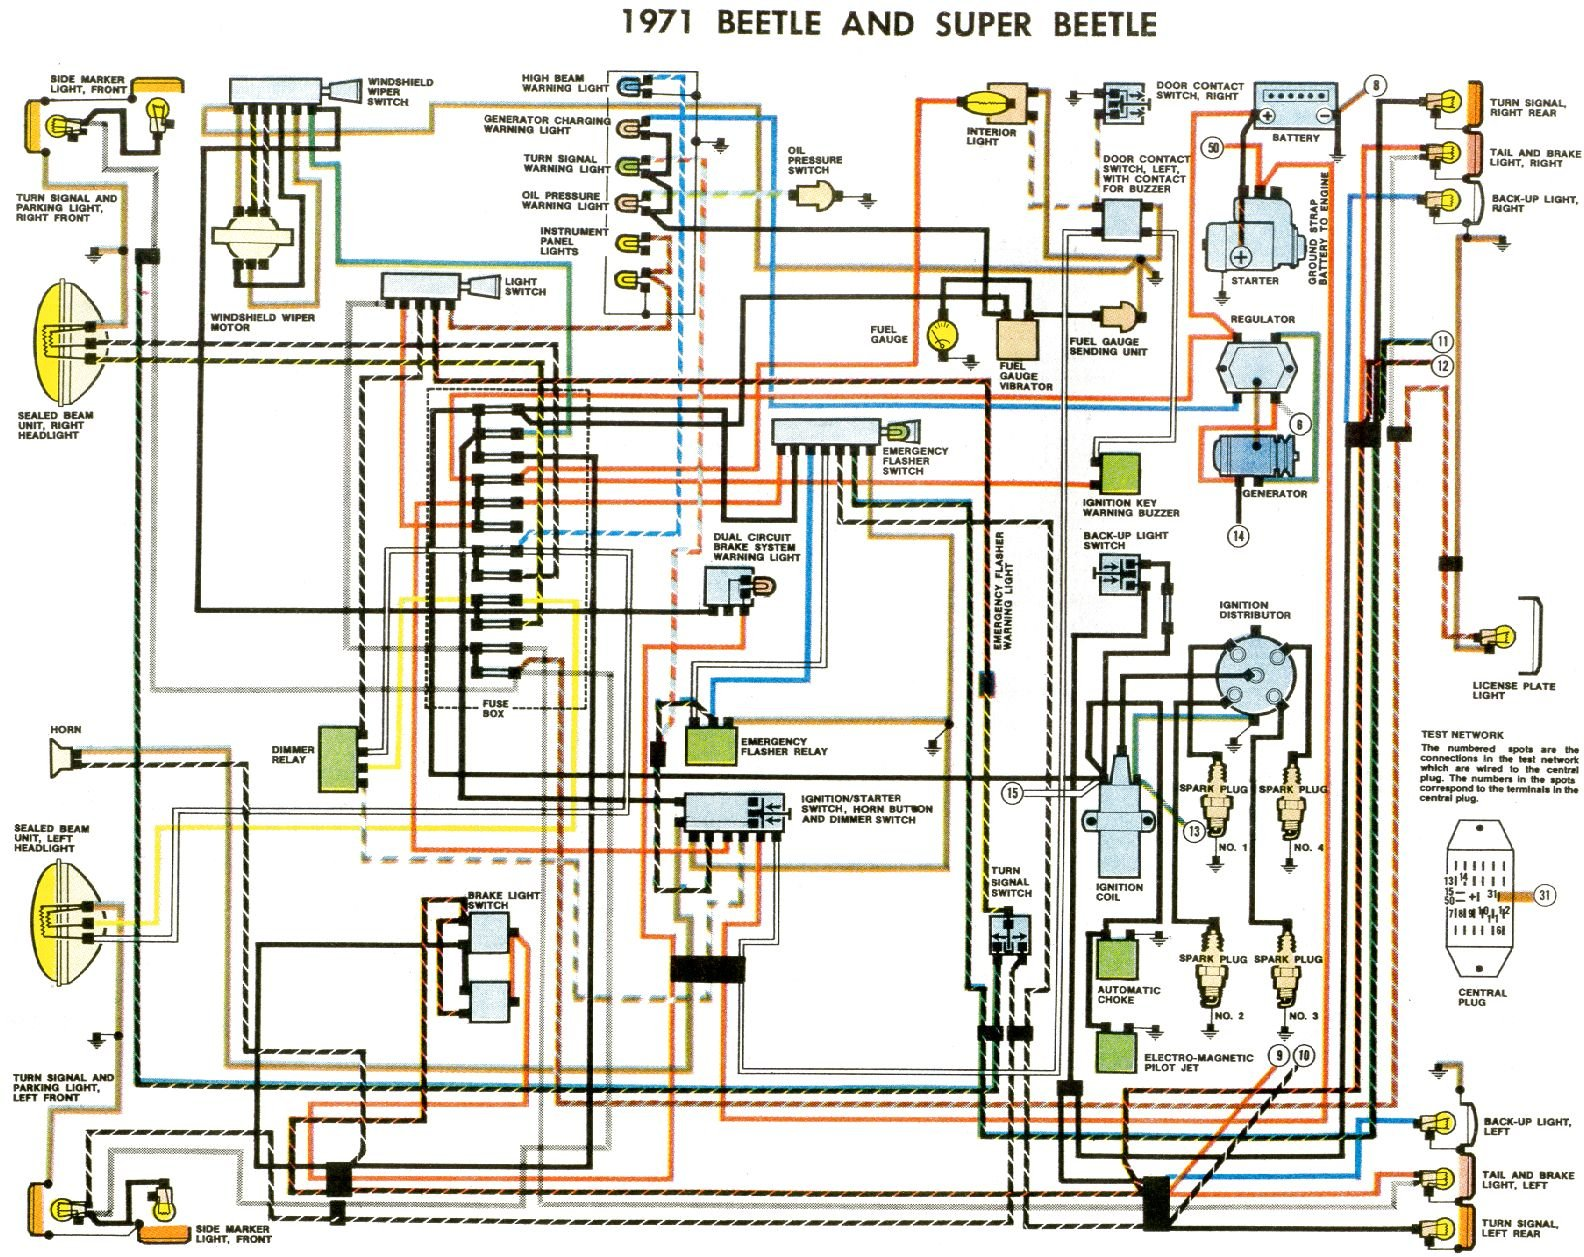 Turbo Beetle Fuse Box Diagram 2000 List Of Schematic Circuit Automotive Back 80 Camaro Auto Electrical Wiring Rh Psu Edu Co Fr Sanjaydutt Me